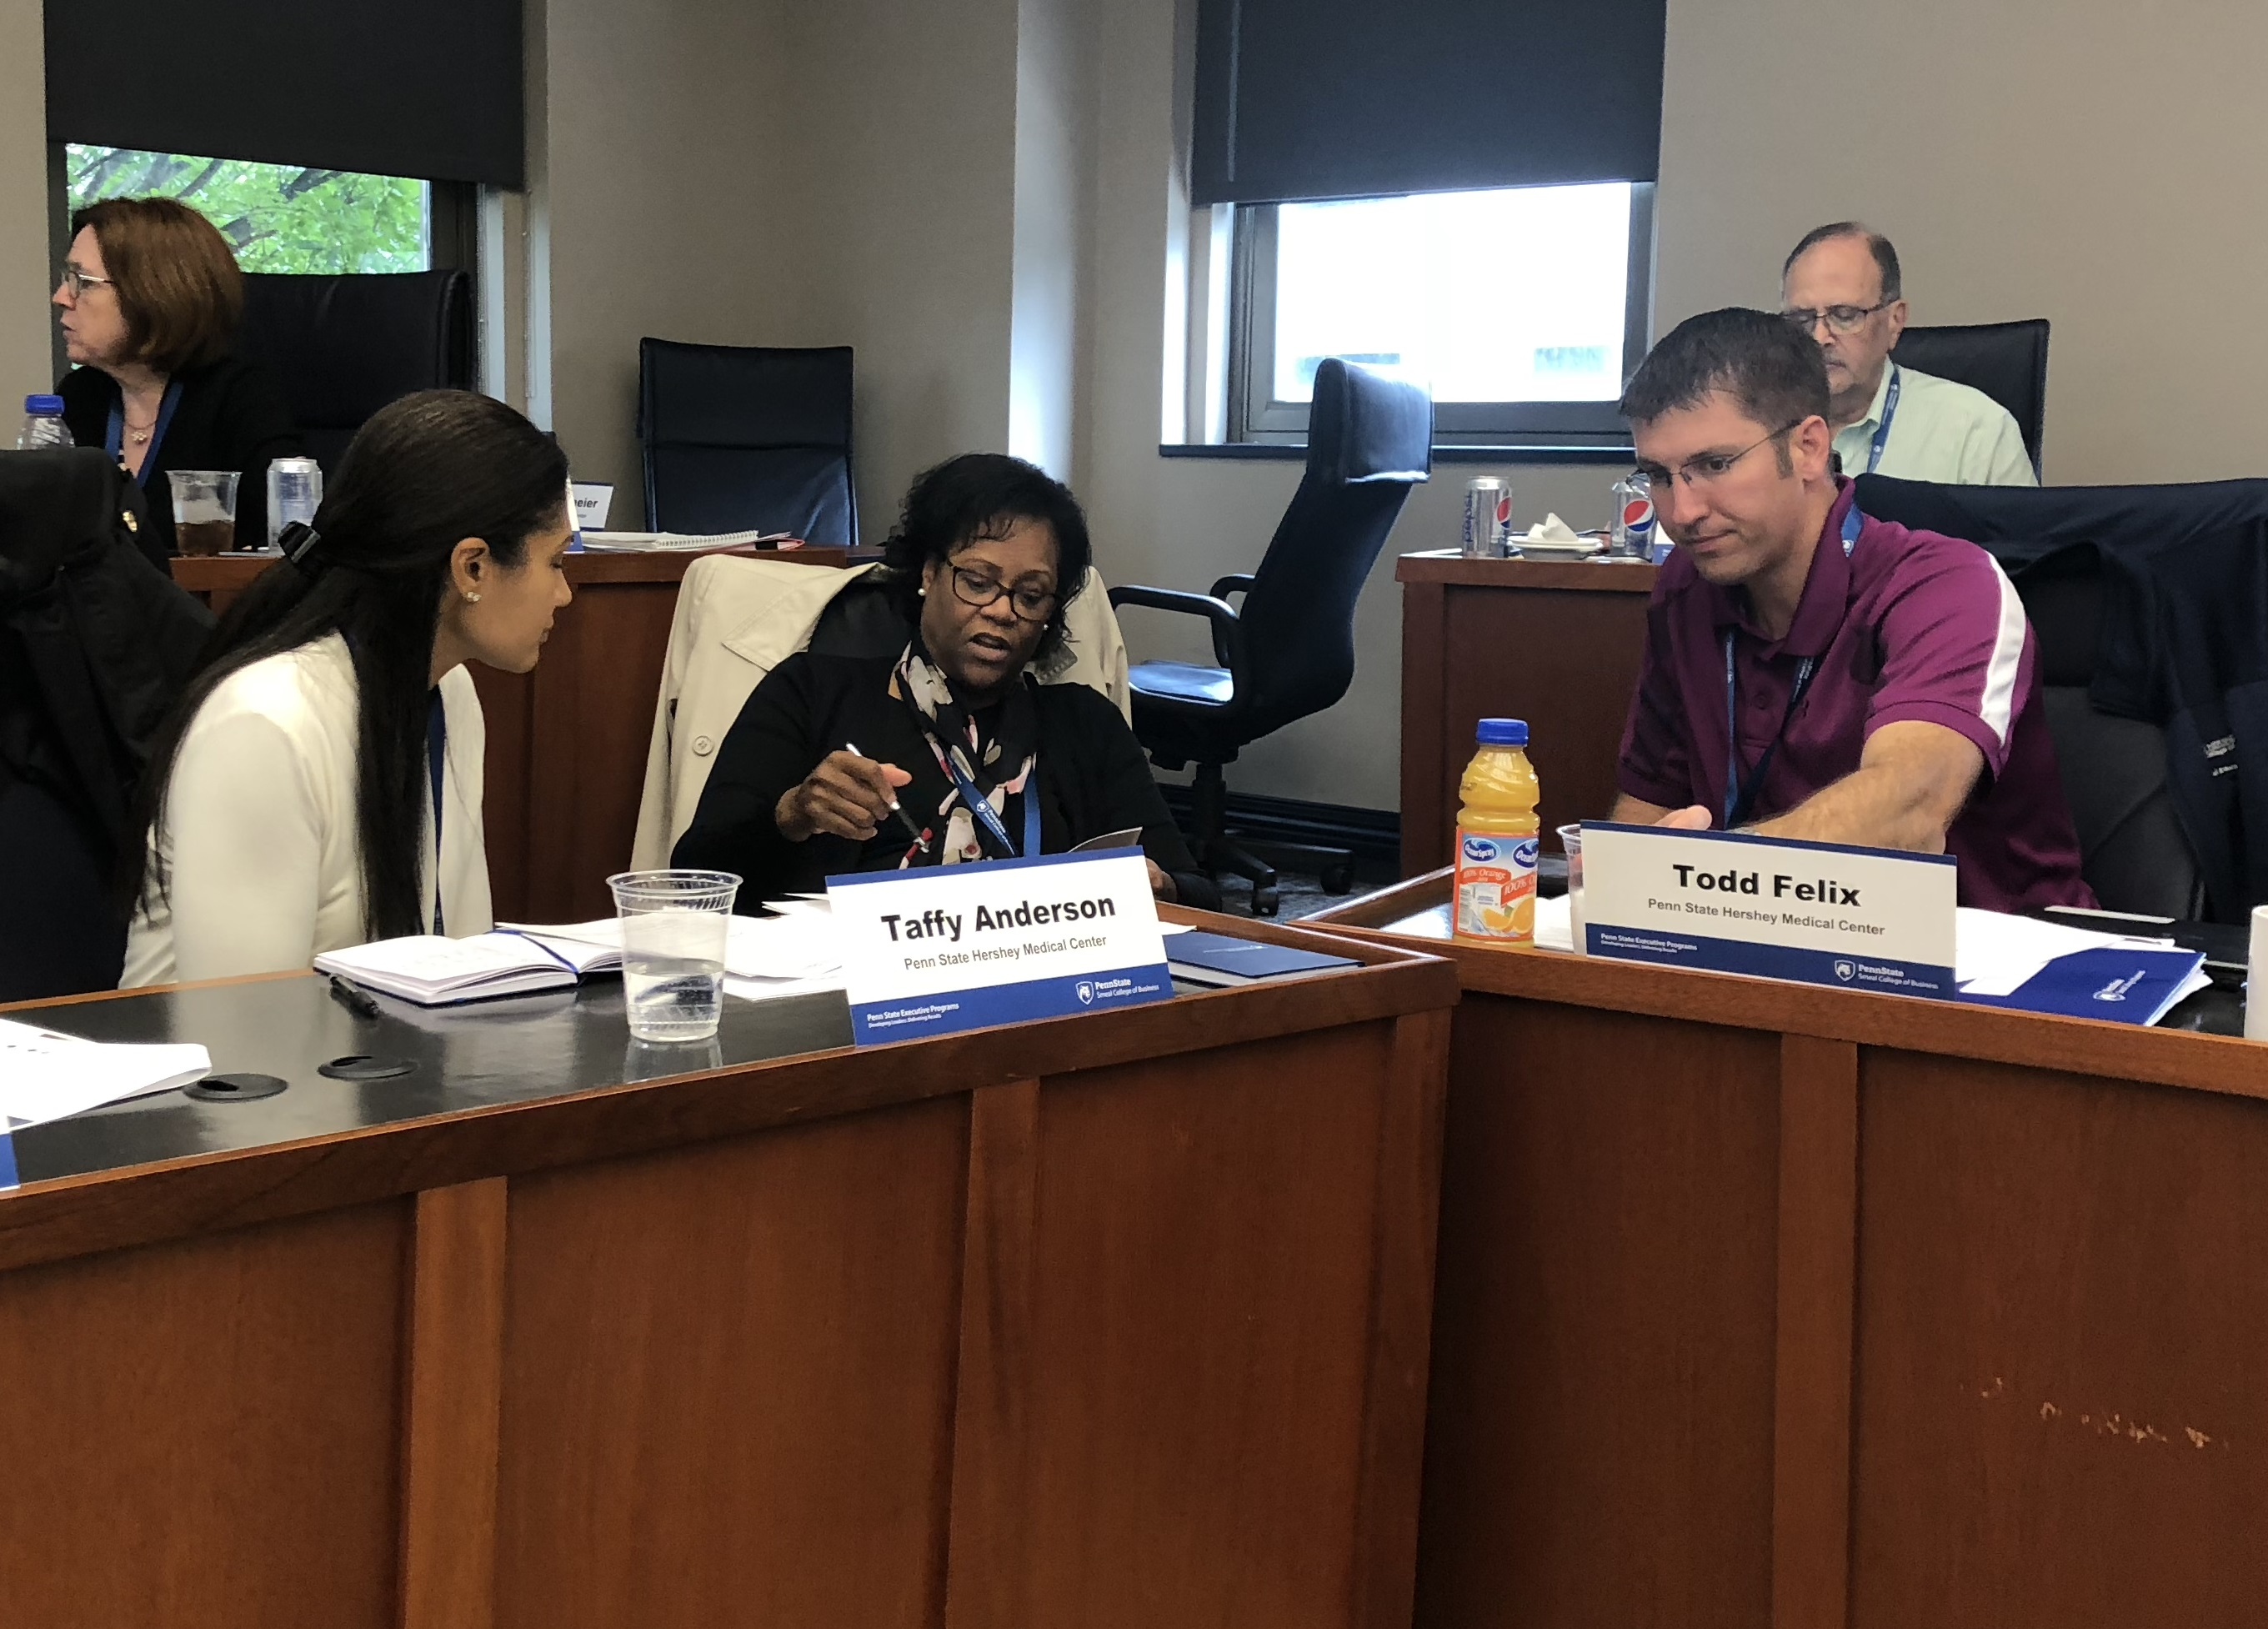 Dr. Taffy Anderson, Dr. Dorothy Rocourt and Dr. Todd Felix sit behind a desk and confer on a classroom assignment during the Leadership Academy.